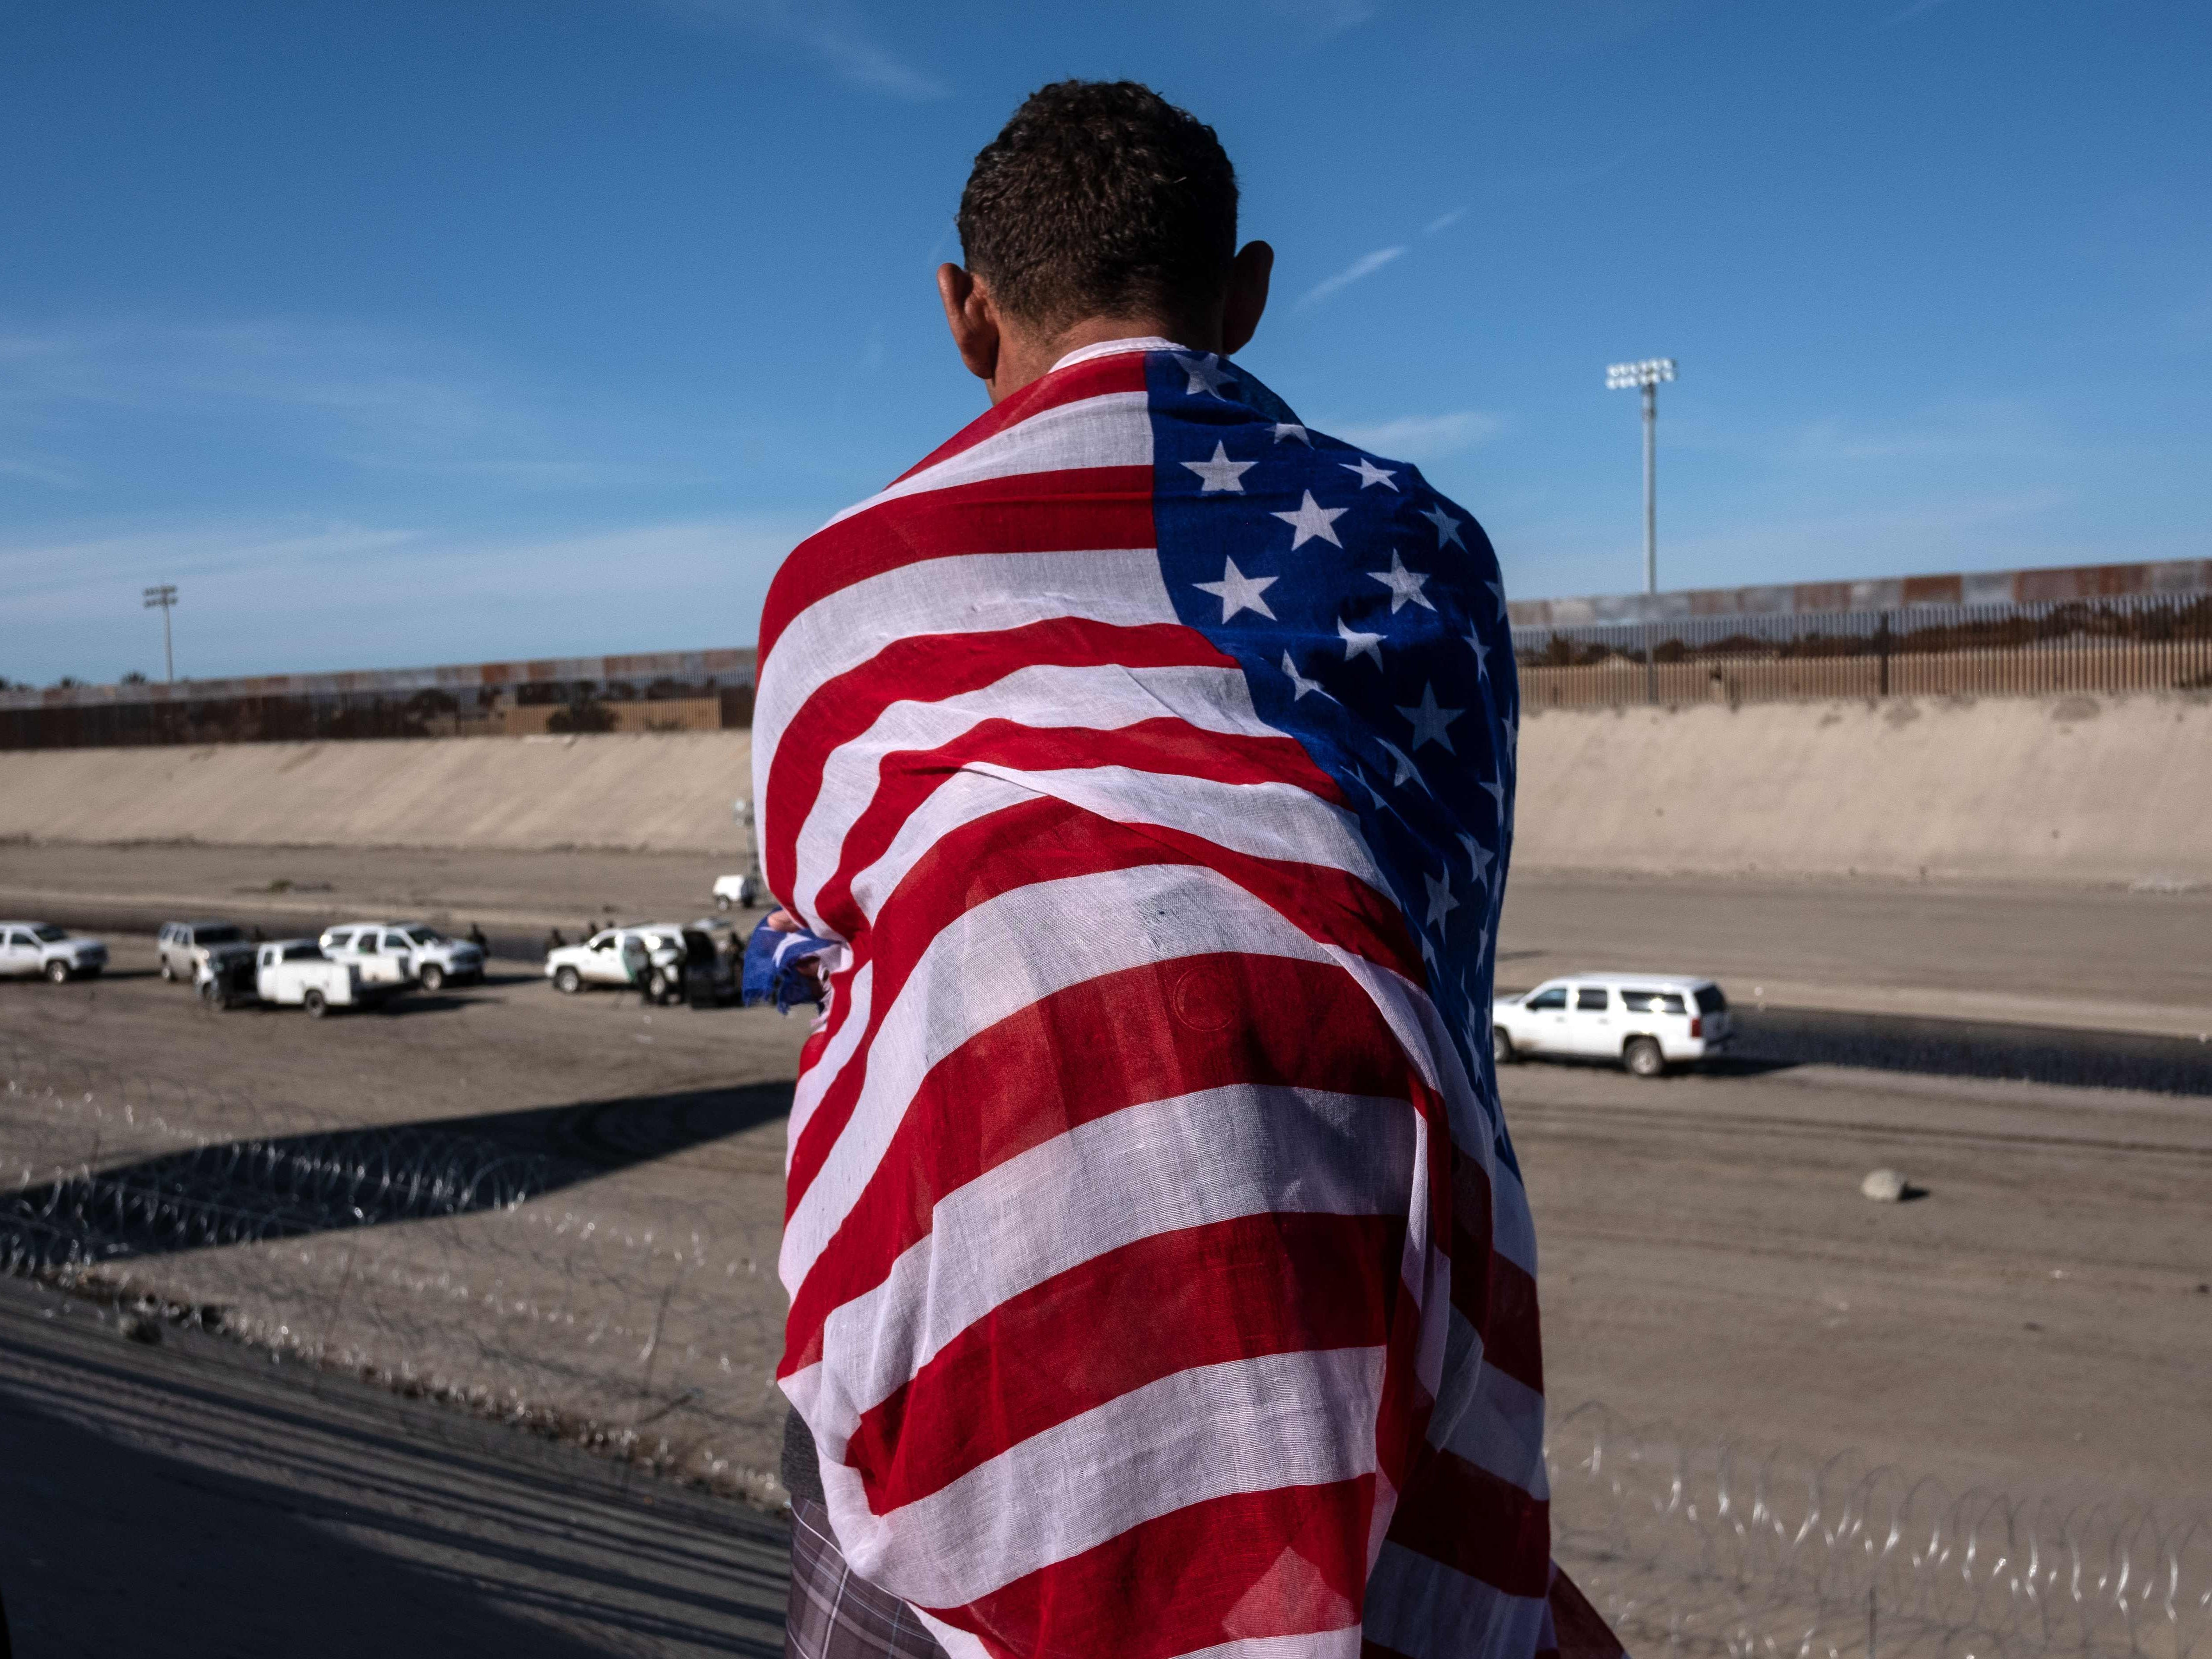 A Central American migrant wrapped in a U.S. flag looks at the almost dry riverbed of the Tijuana River near the El Chaparral border crossing near U.S.-Mexico border in Tijuana, Mexico, on Nov. 25, 2018.